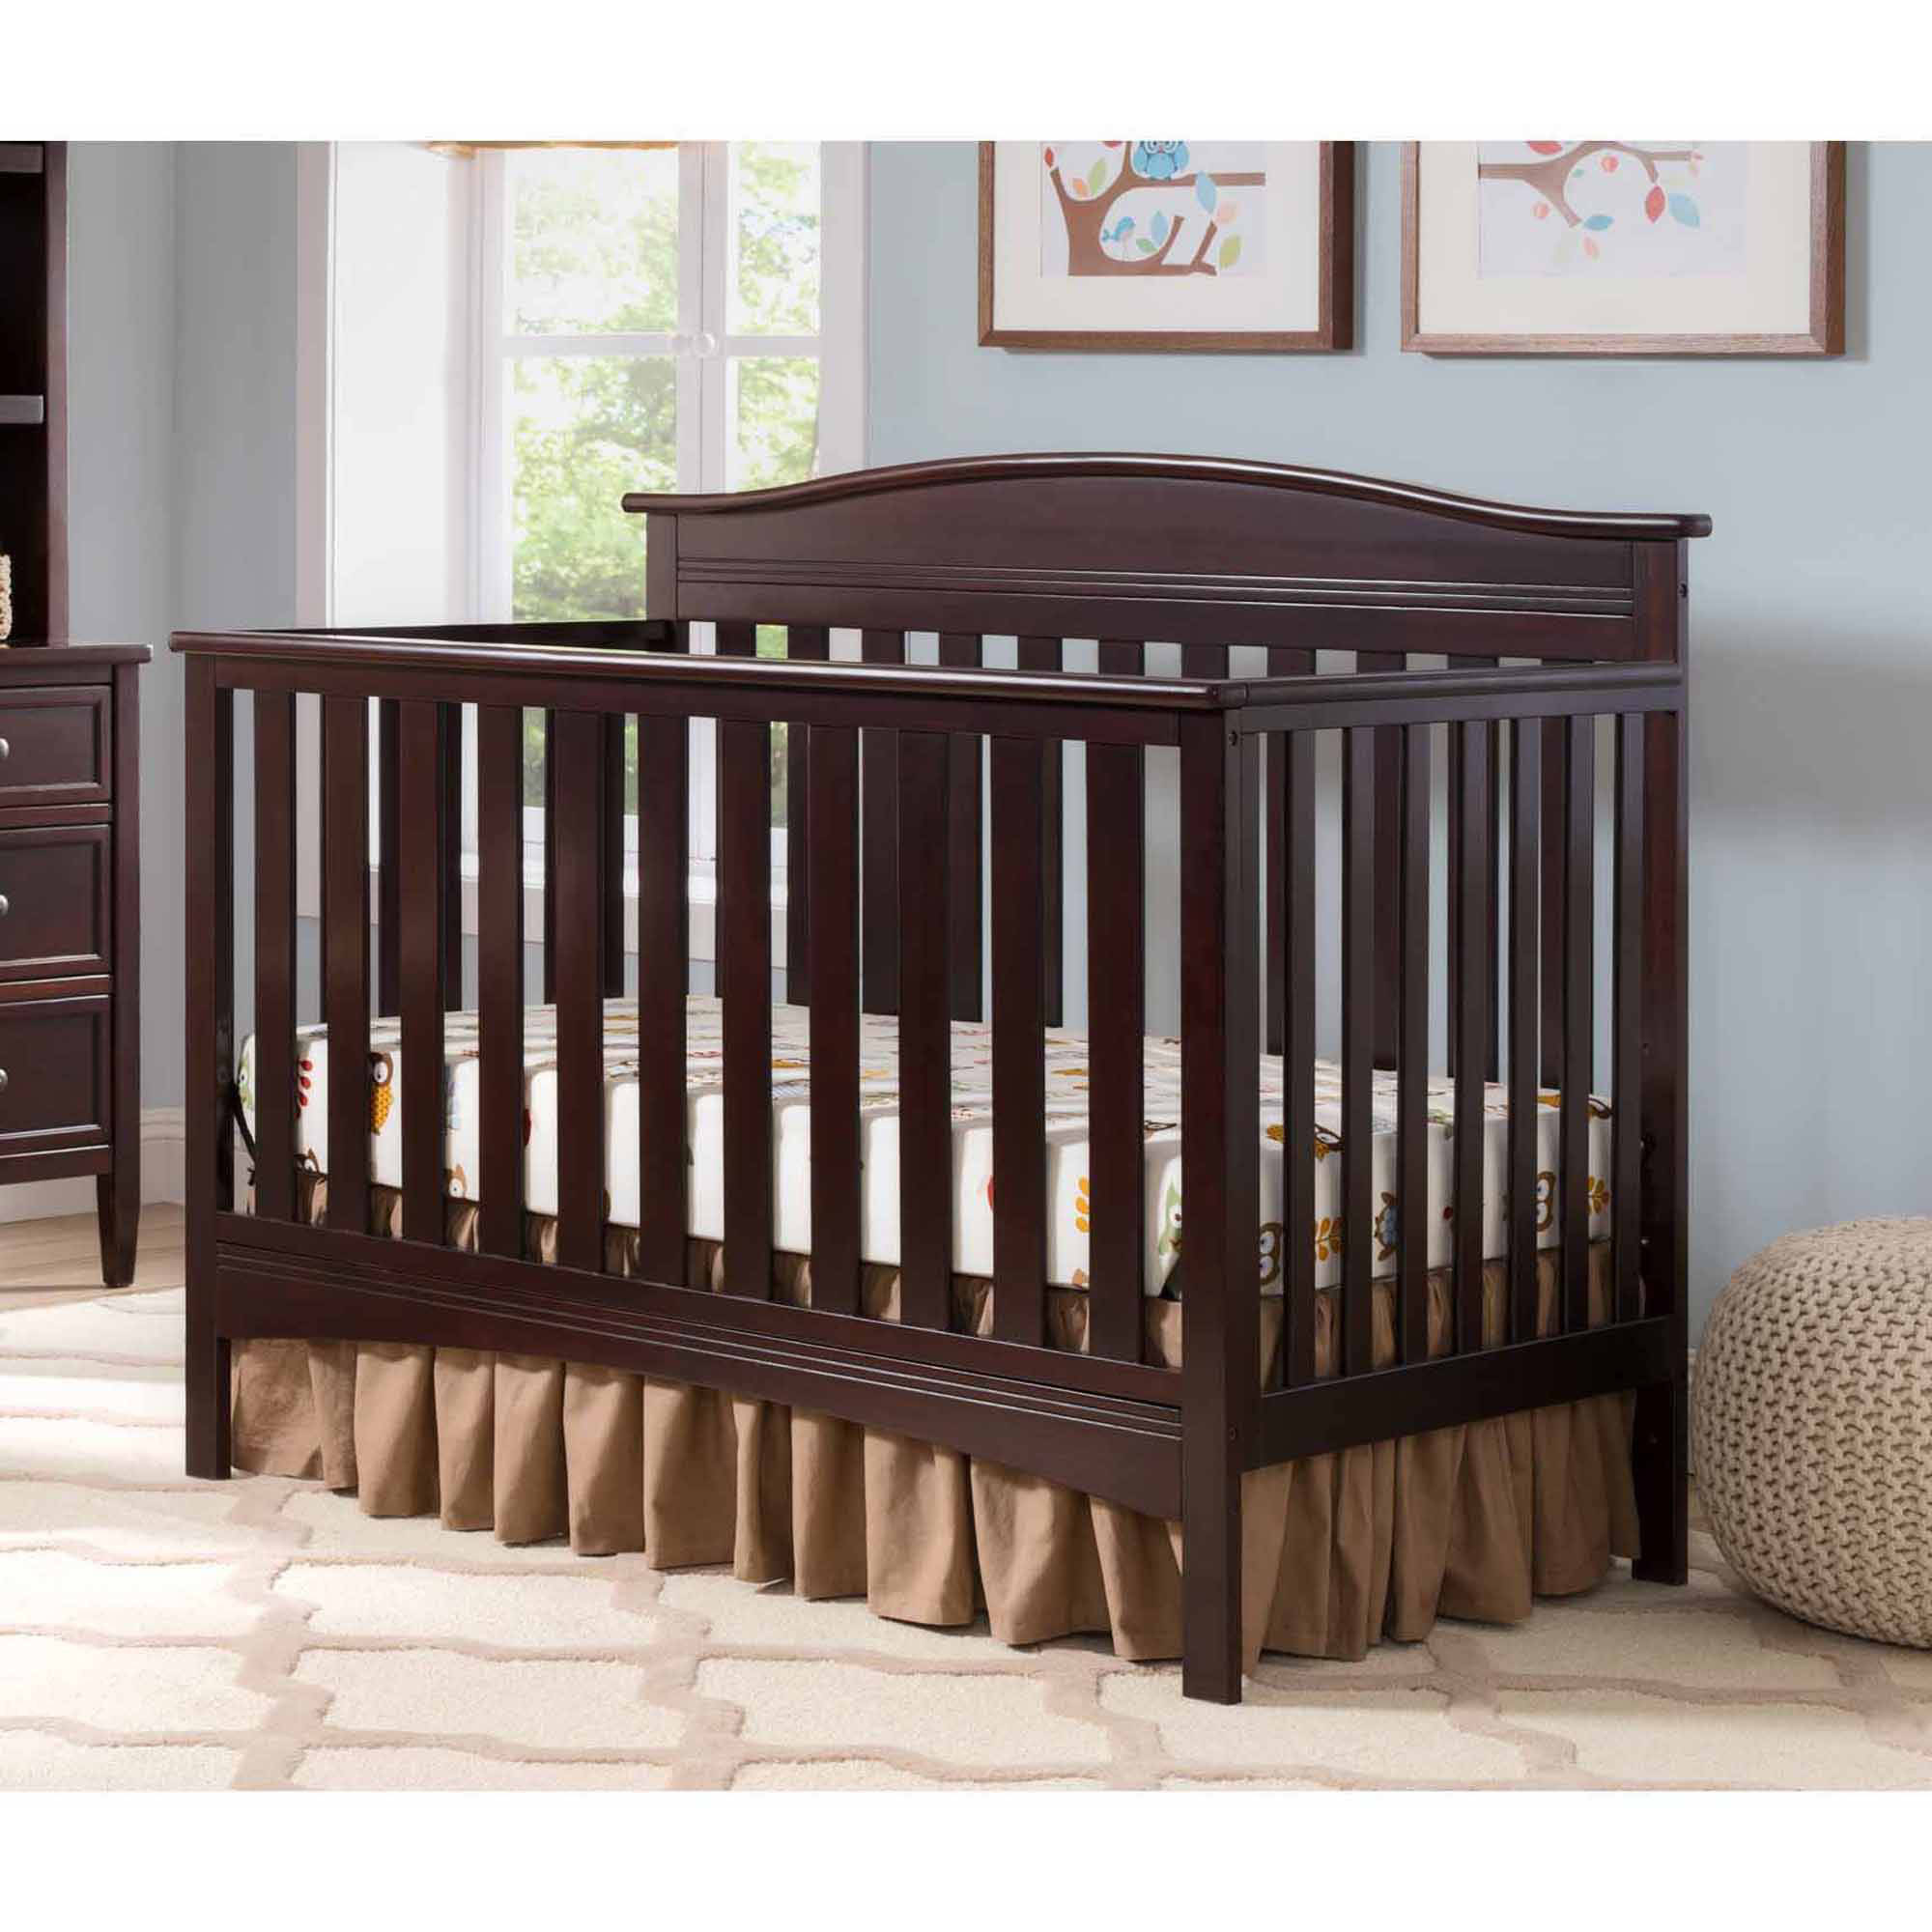 Delta Children Baker 4-in-1 Crib